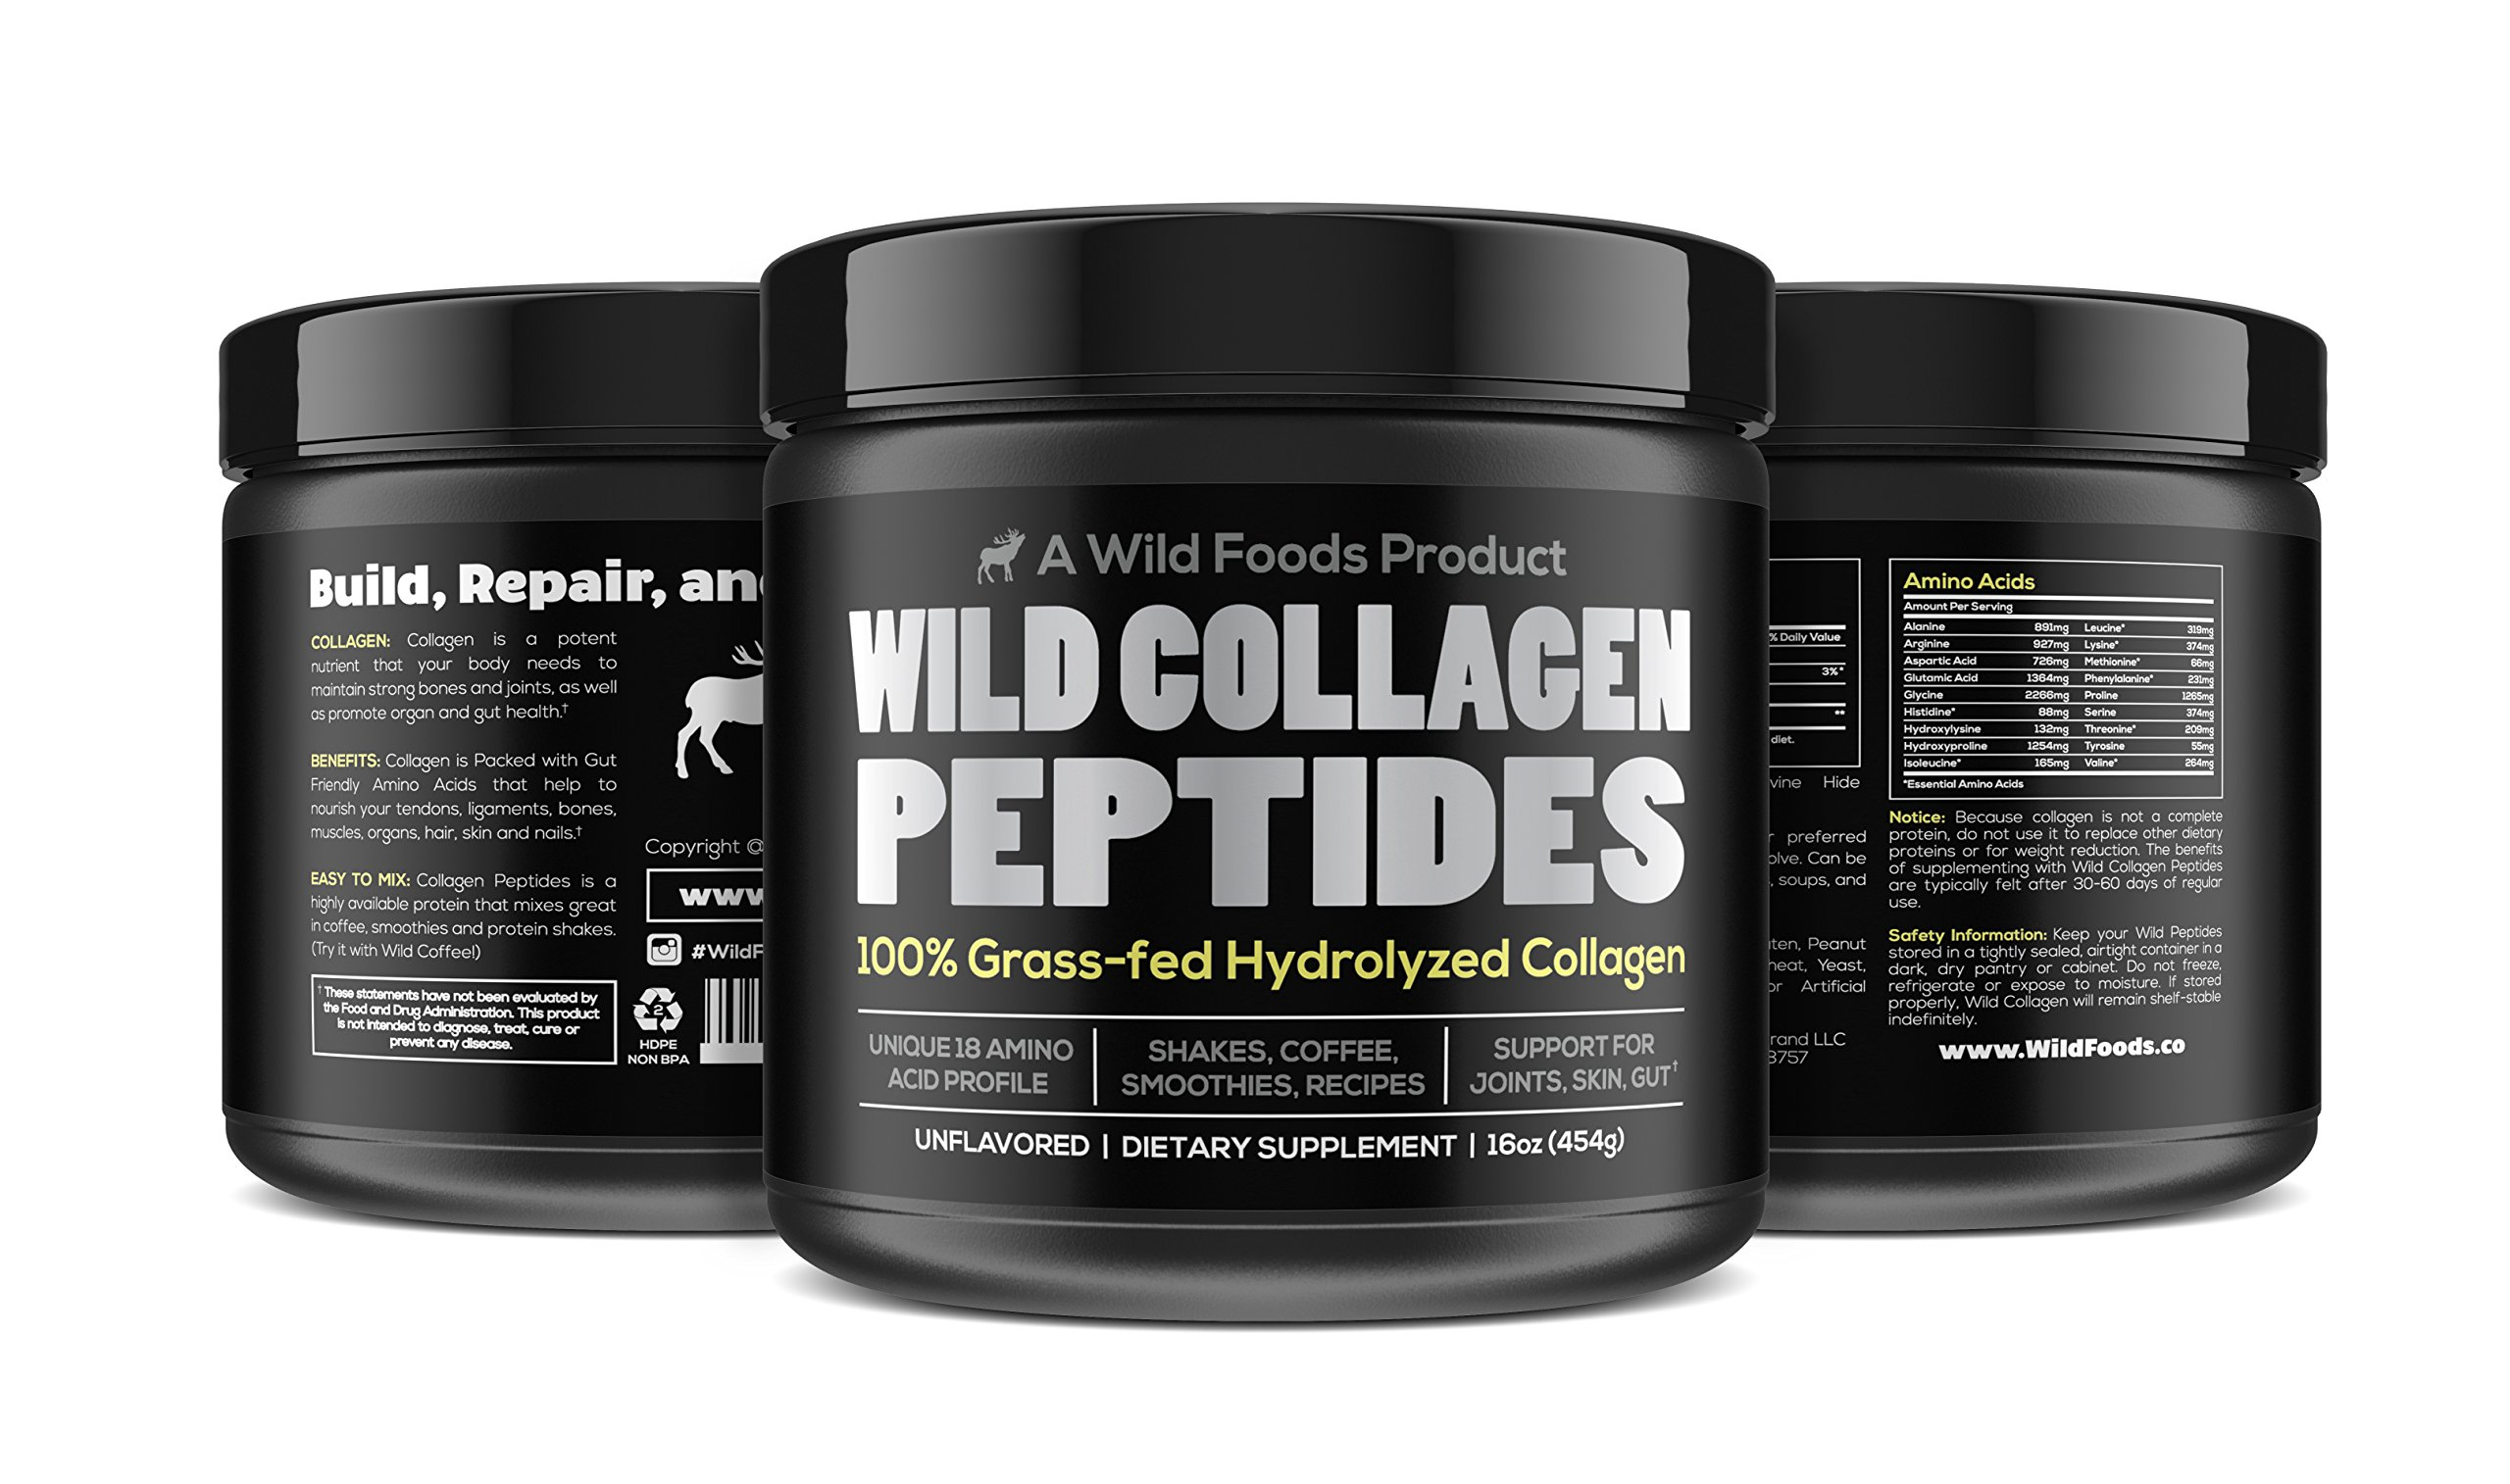 Collagen Peptides Powder by Wild Foods | Vital Type I & III Hydrolyzed Pasture-Raised Protein | Non-GMO, Dairy Free, Paleo & Keto, Unflavored (16 Ounce)